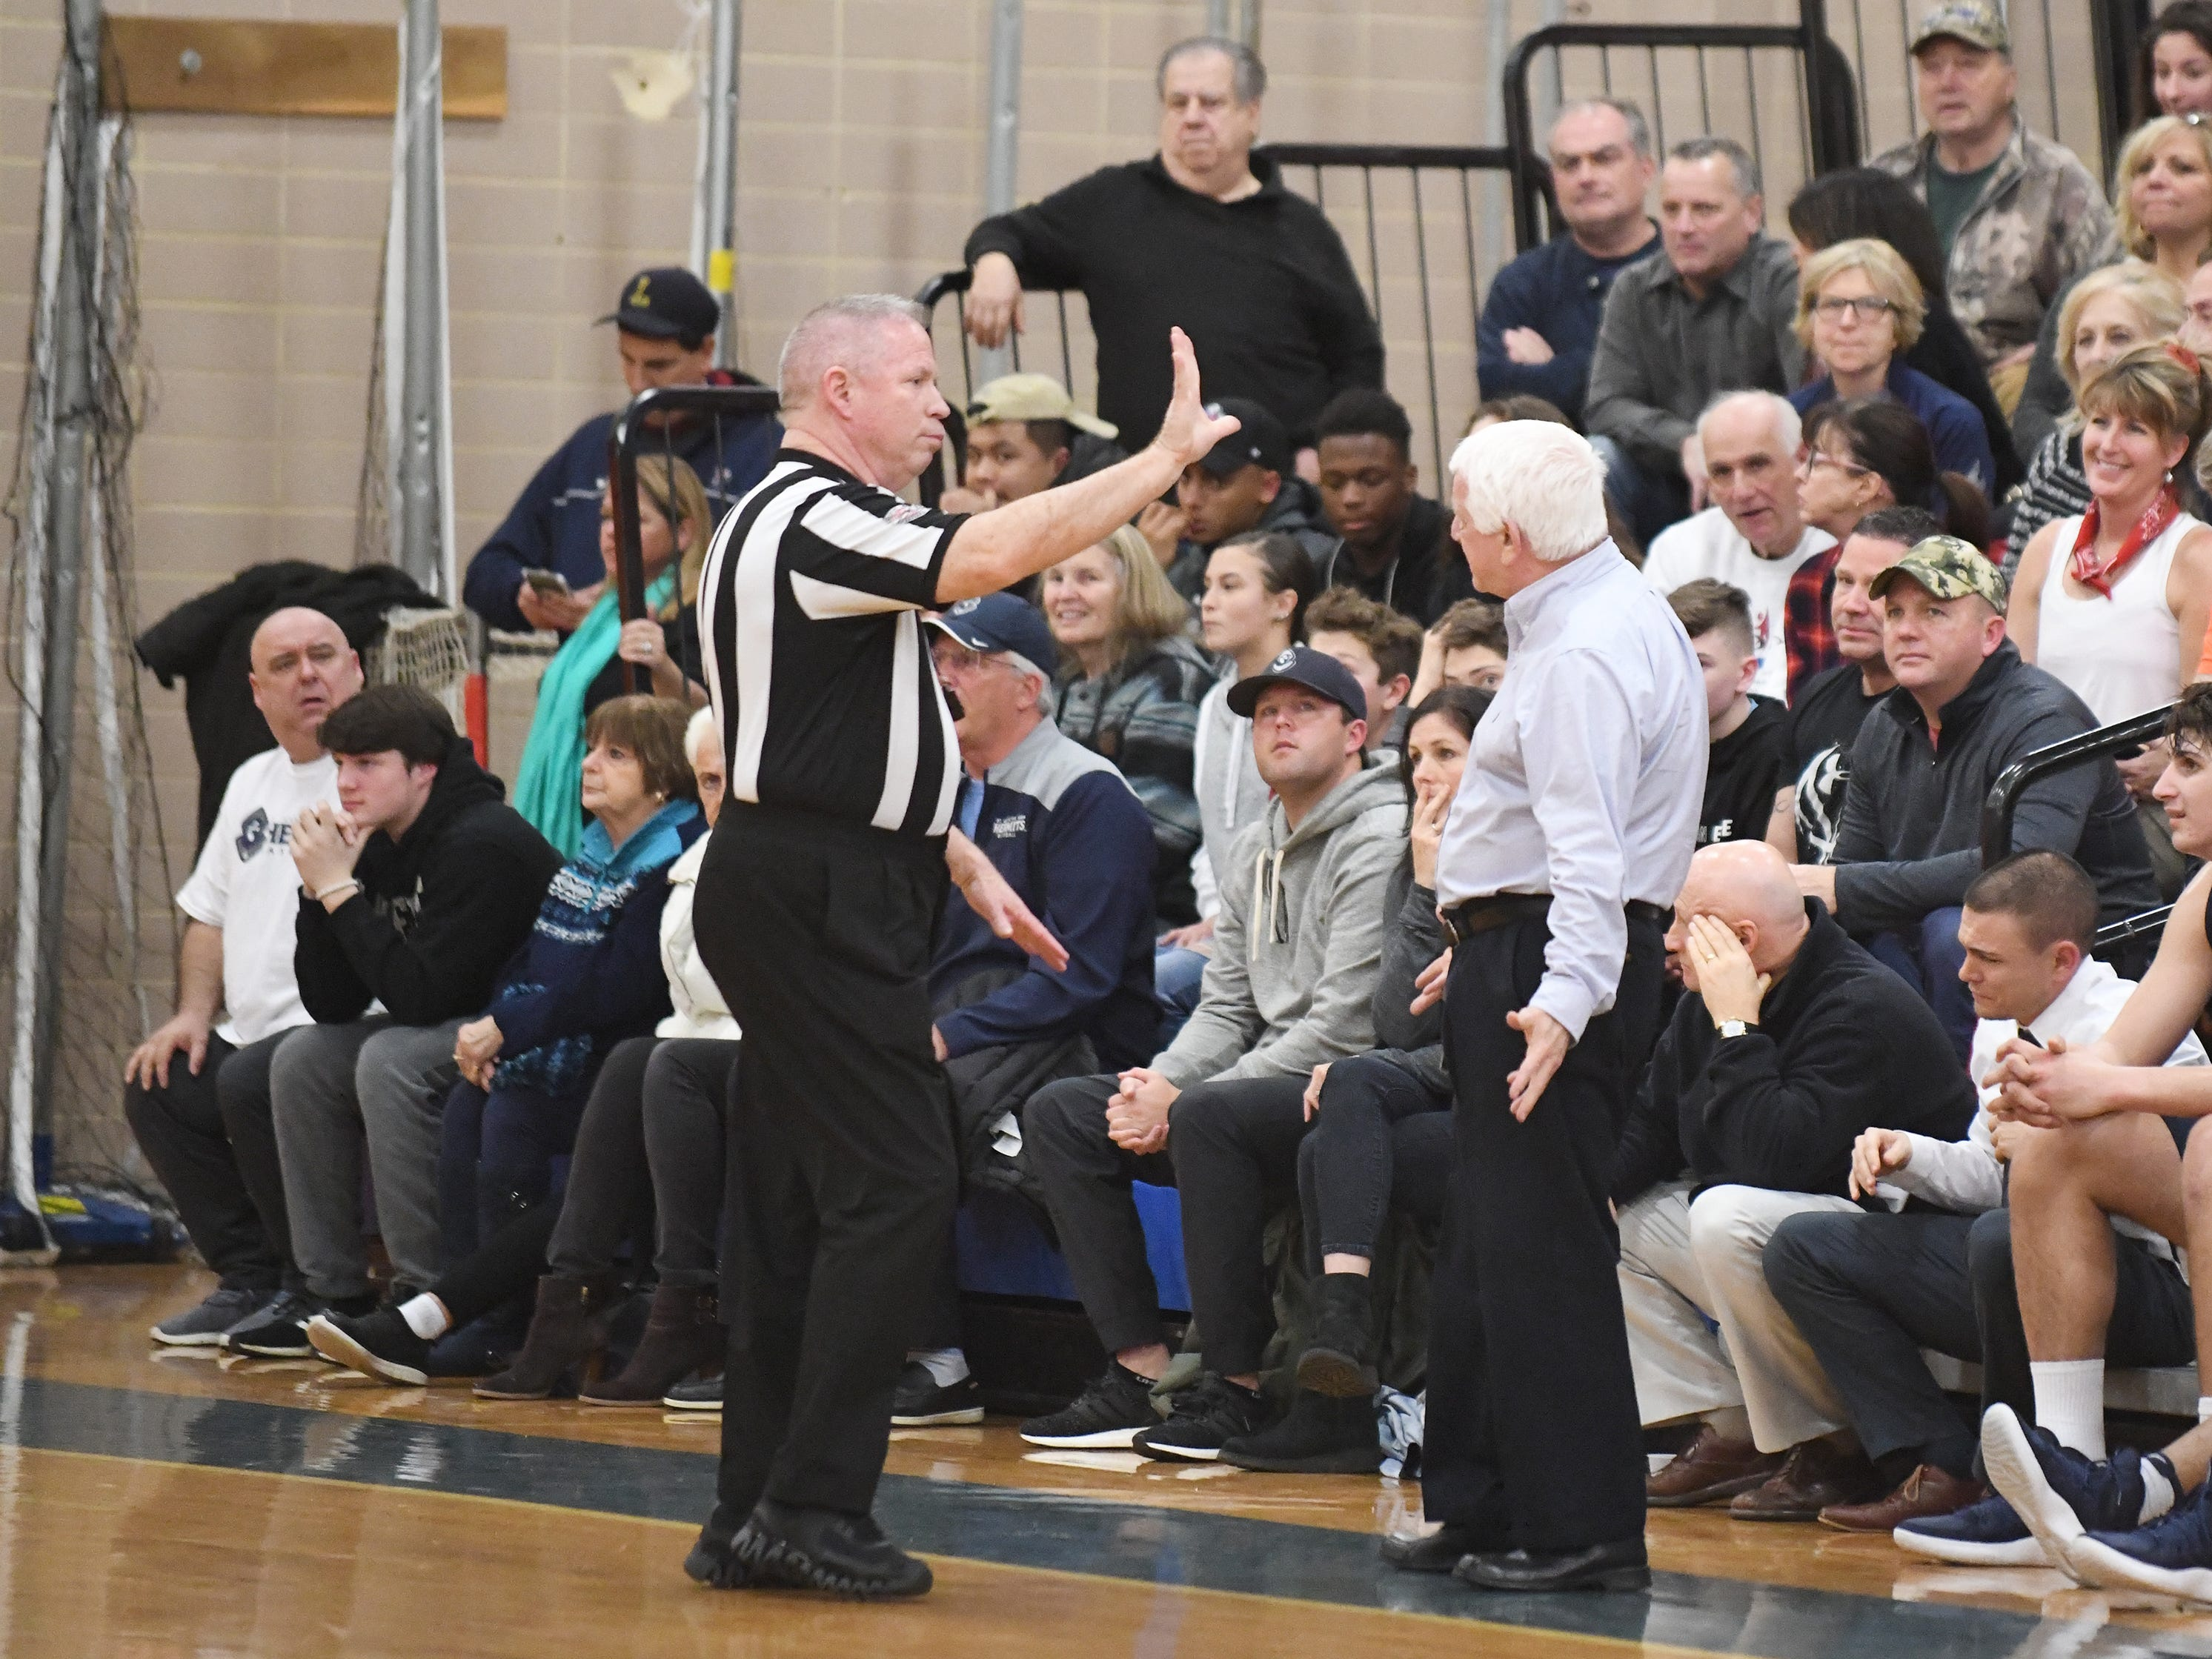 St. Augustine's head coach Paul Rodio argues a call during a game against Millville. The Hermits topped the Thunderbolts 66-53 on Friday, Jan. 18, 2019.